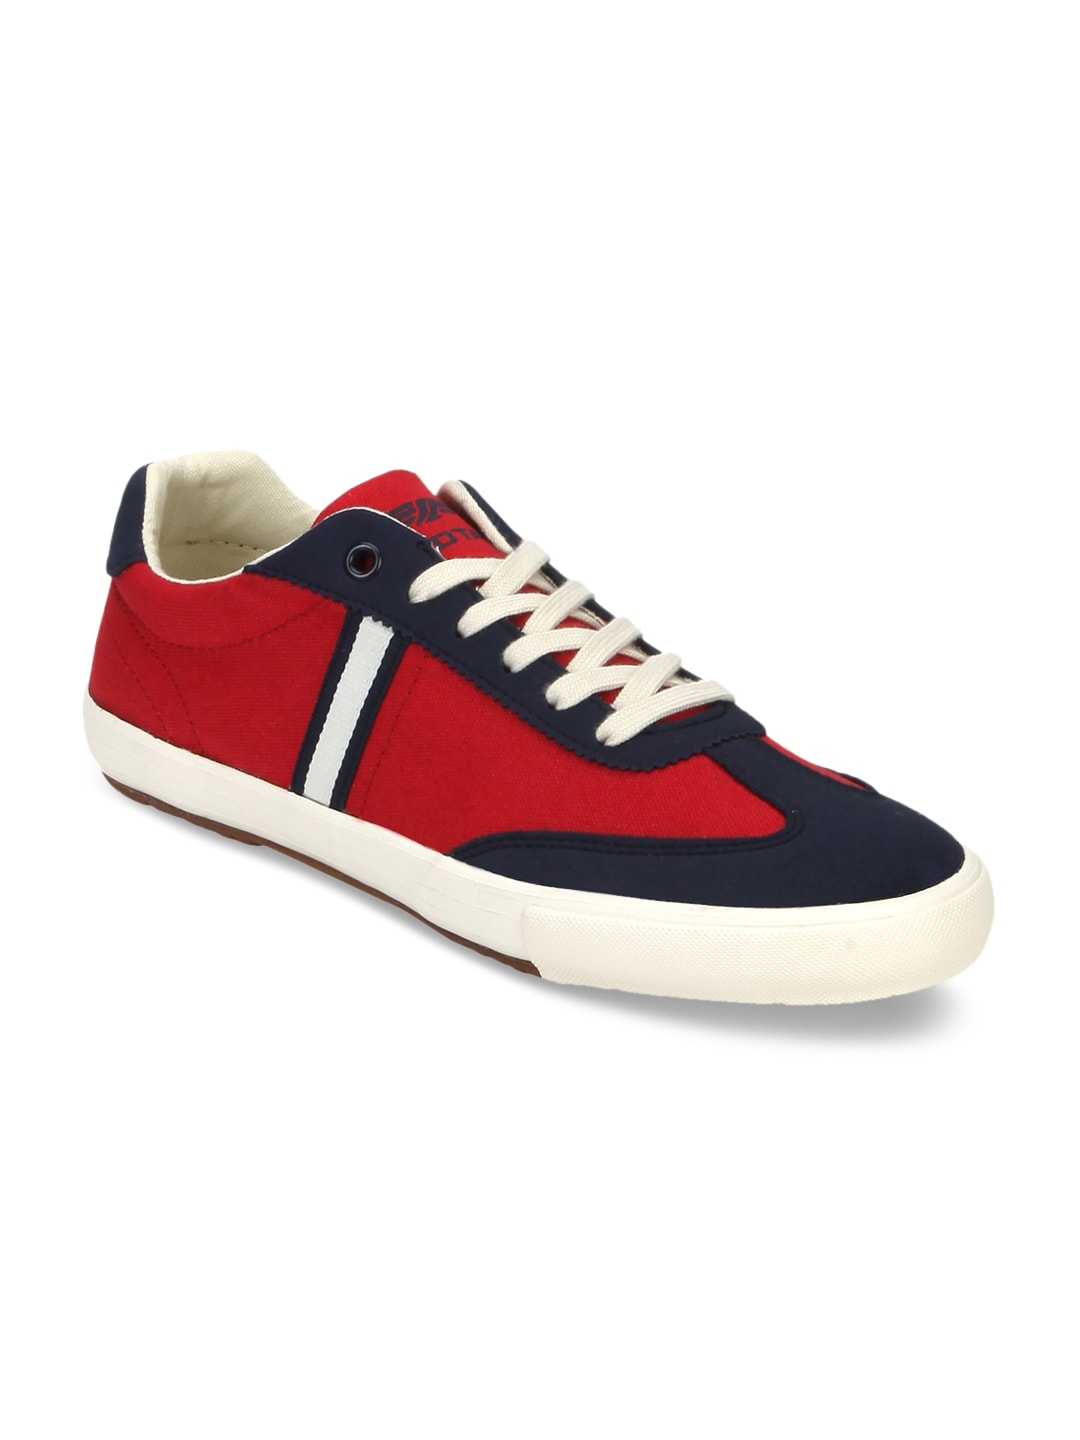 Red Tape Men Red & Navy Sneakers image